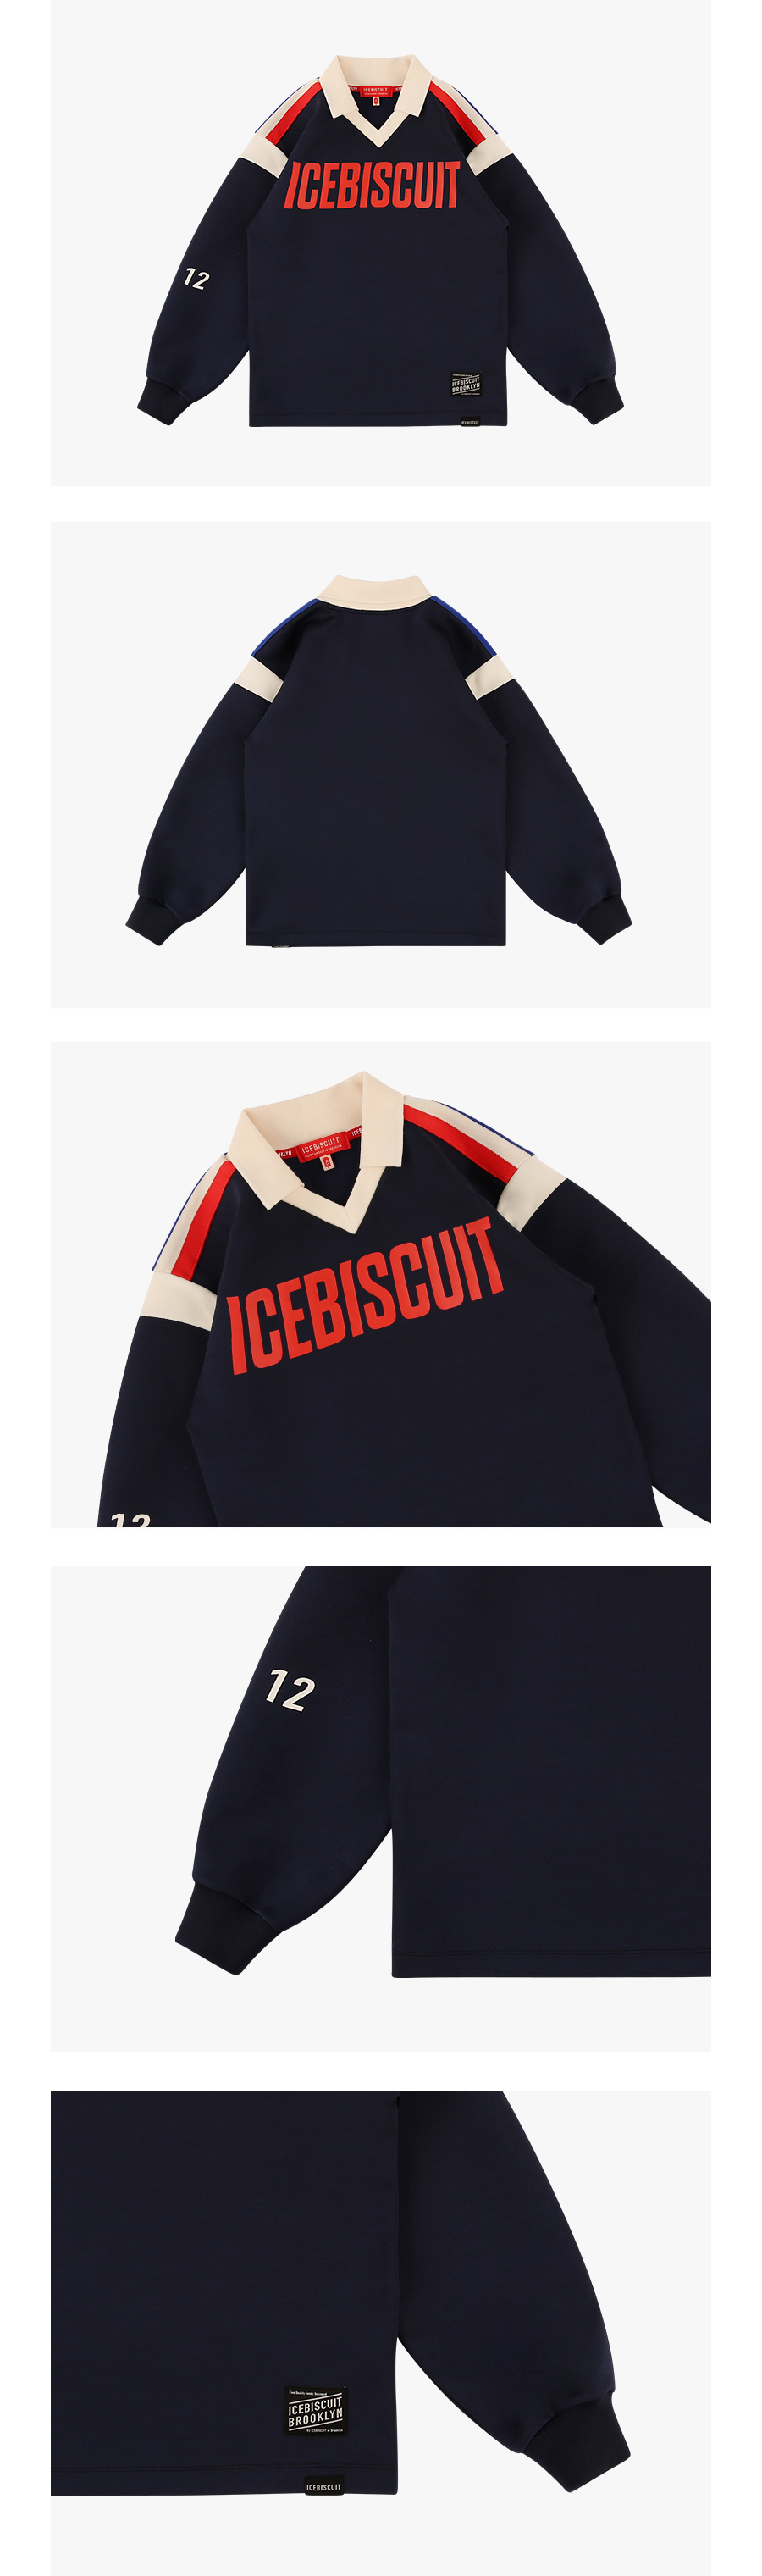 Icebiscuit logo athletic soccer tee 상세 이미지